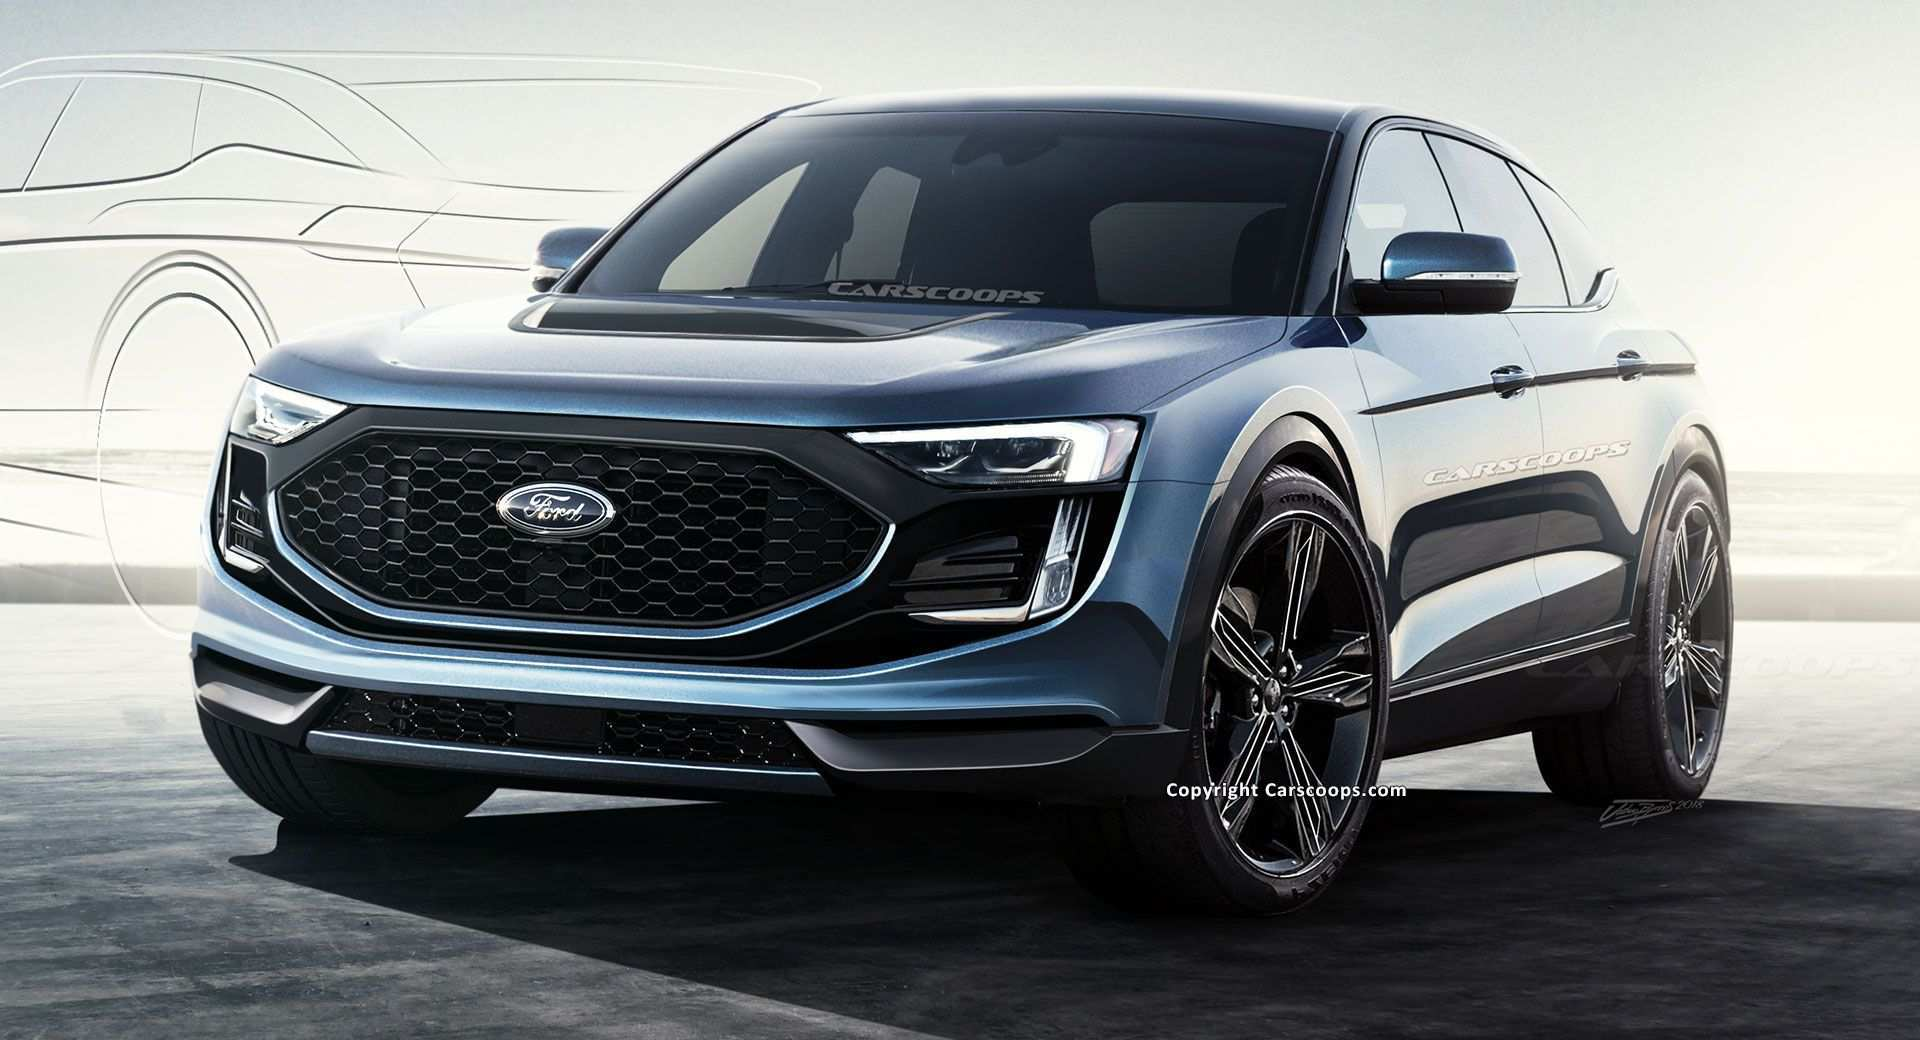 88 Gallery of Ford Vehicles 2020 Pricing with Ford Vehicles 2020